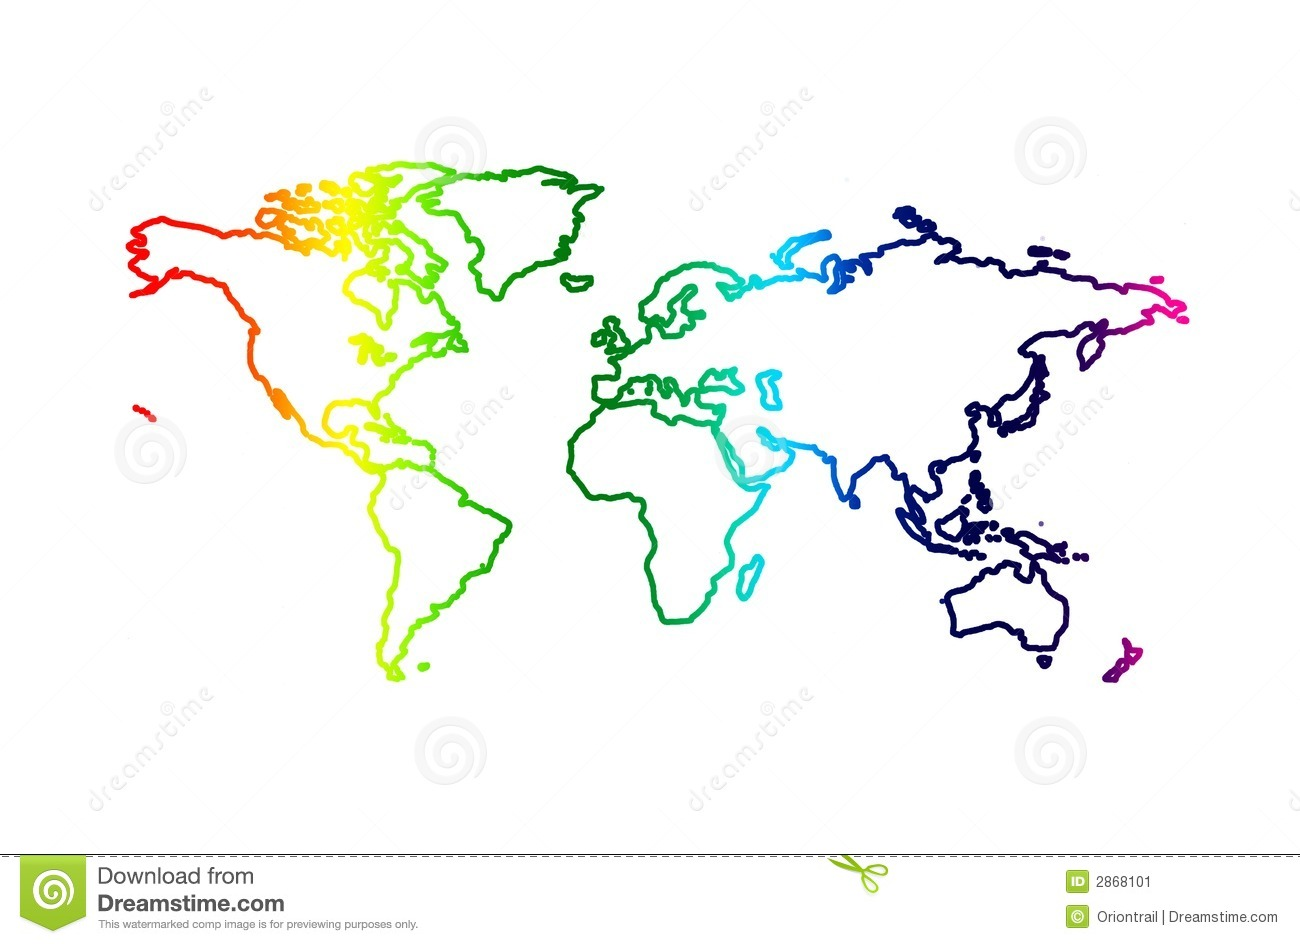 World outline map stock illustration. Illustration of america - 2868101